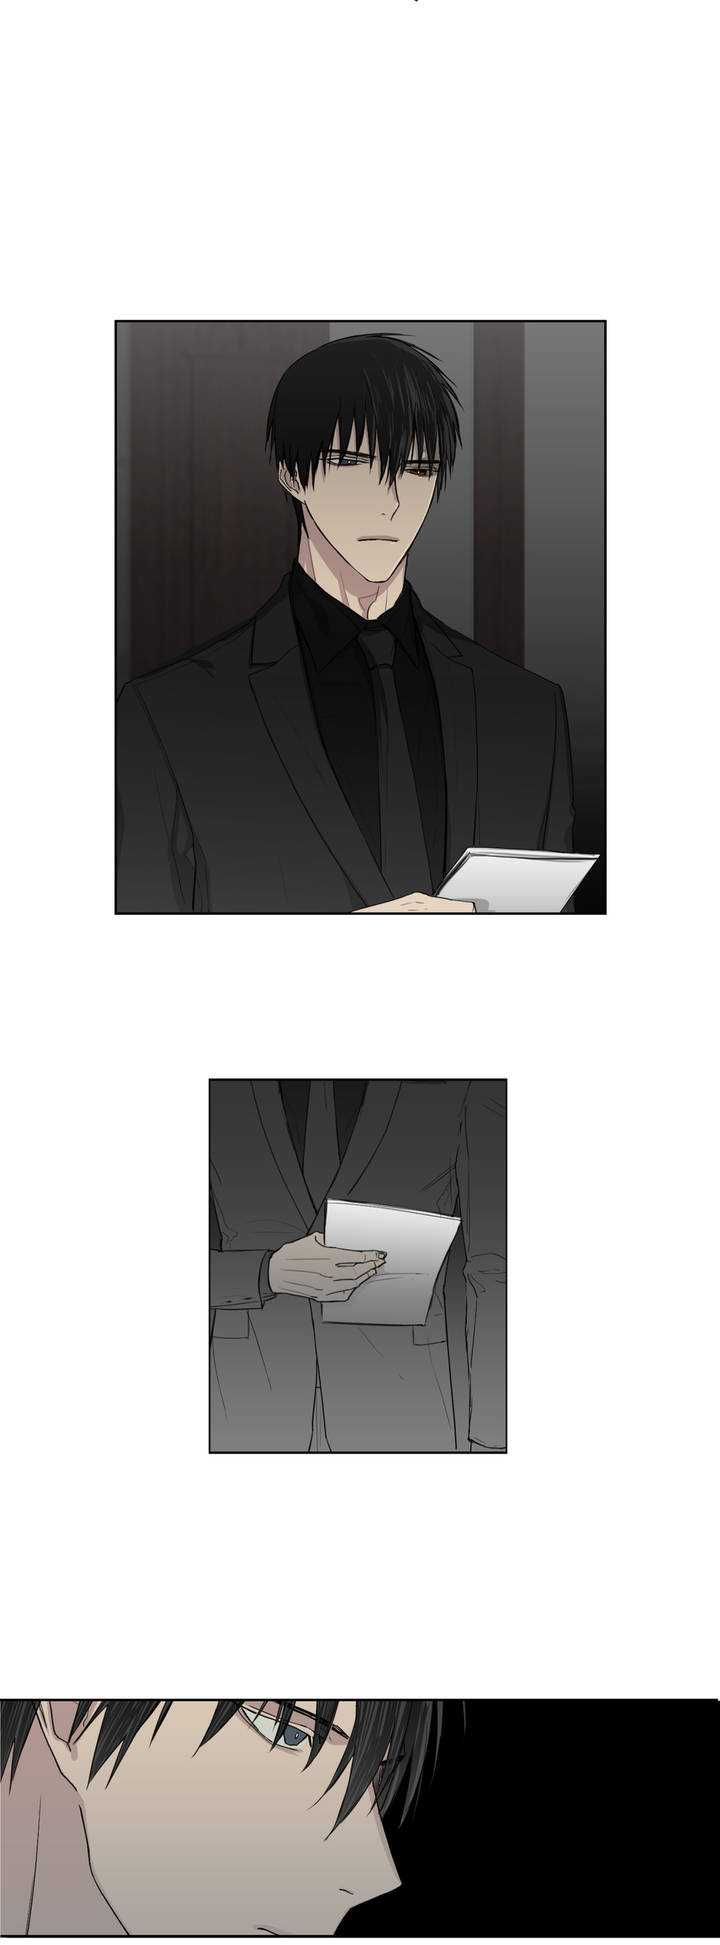 Royal Servant - Chapter 1